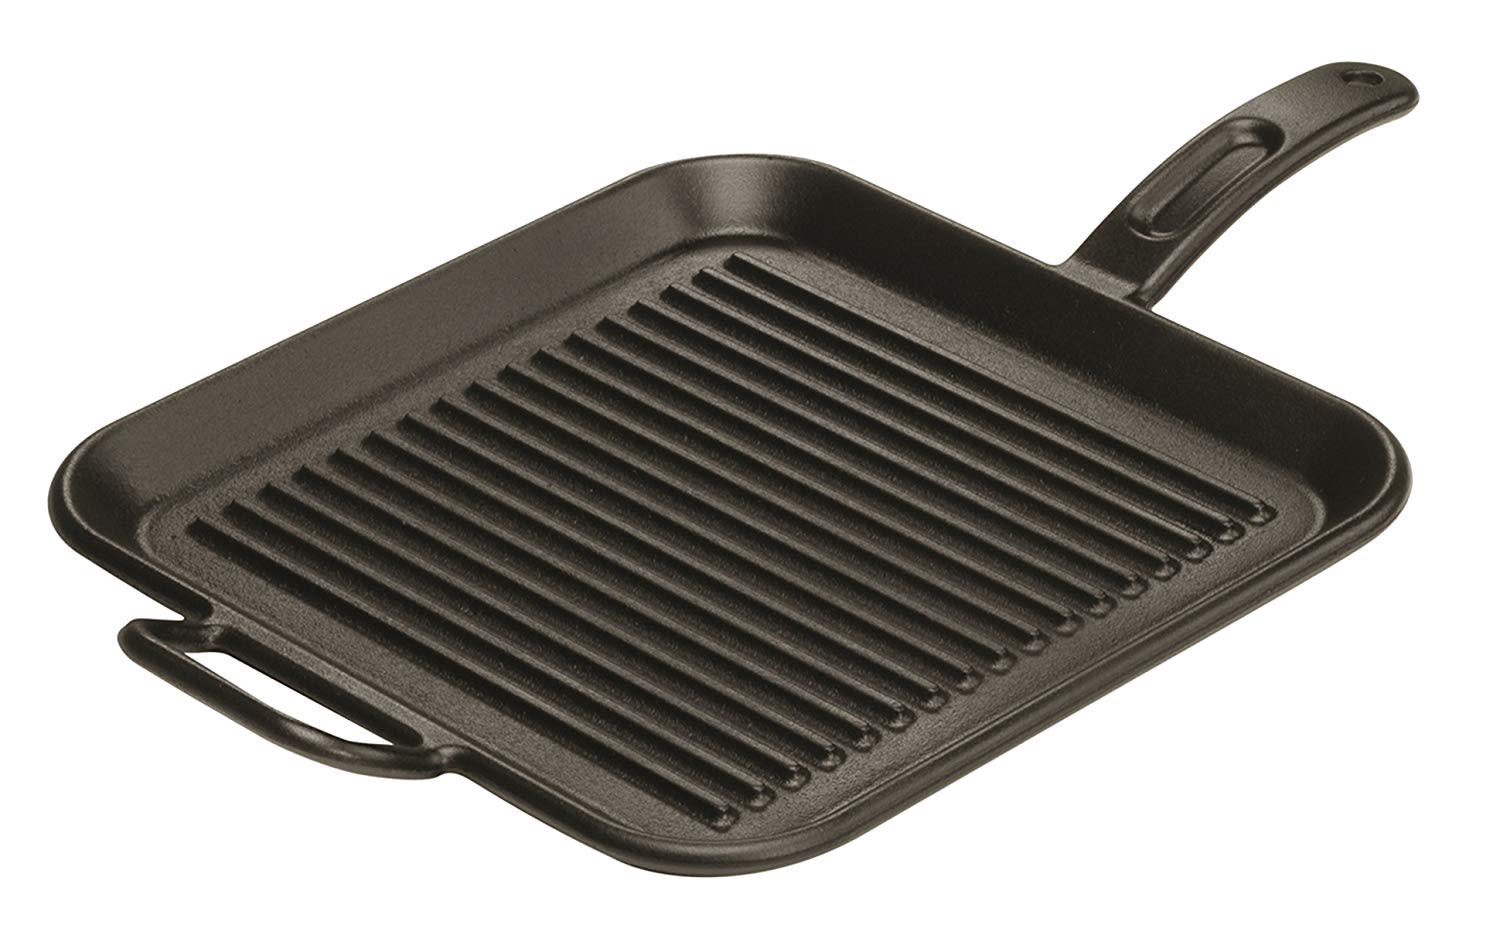 The type of pan that actually makes food taste better